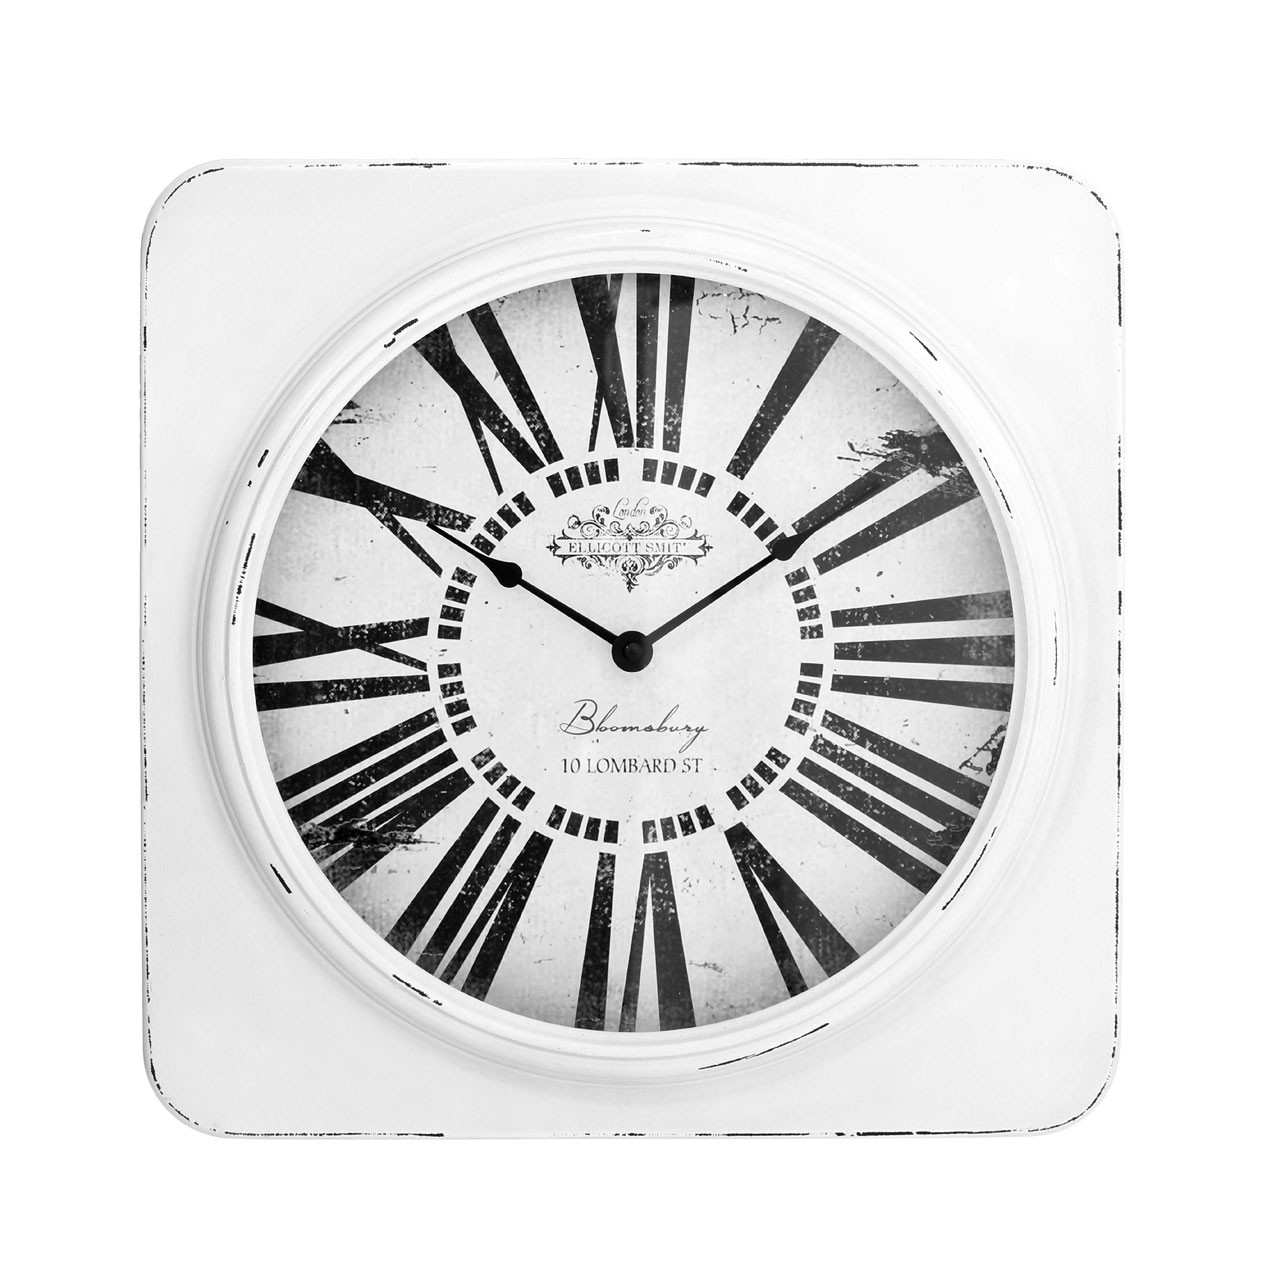 Prime Furnishing Antique Square Wall Clock - White